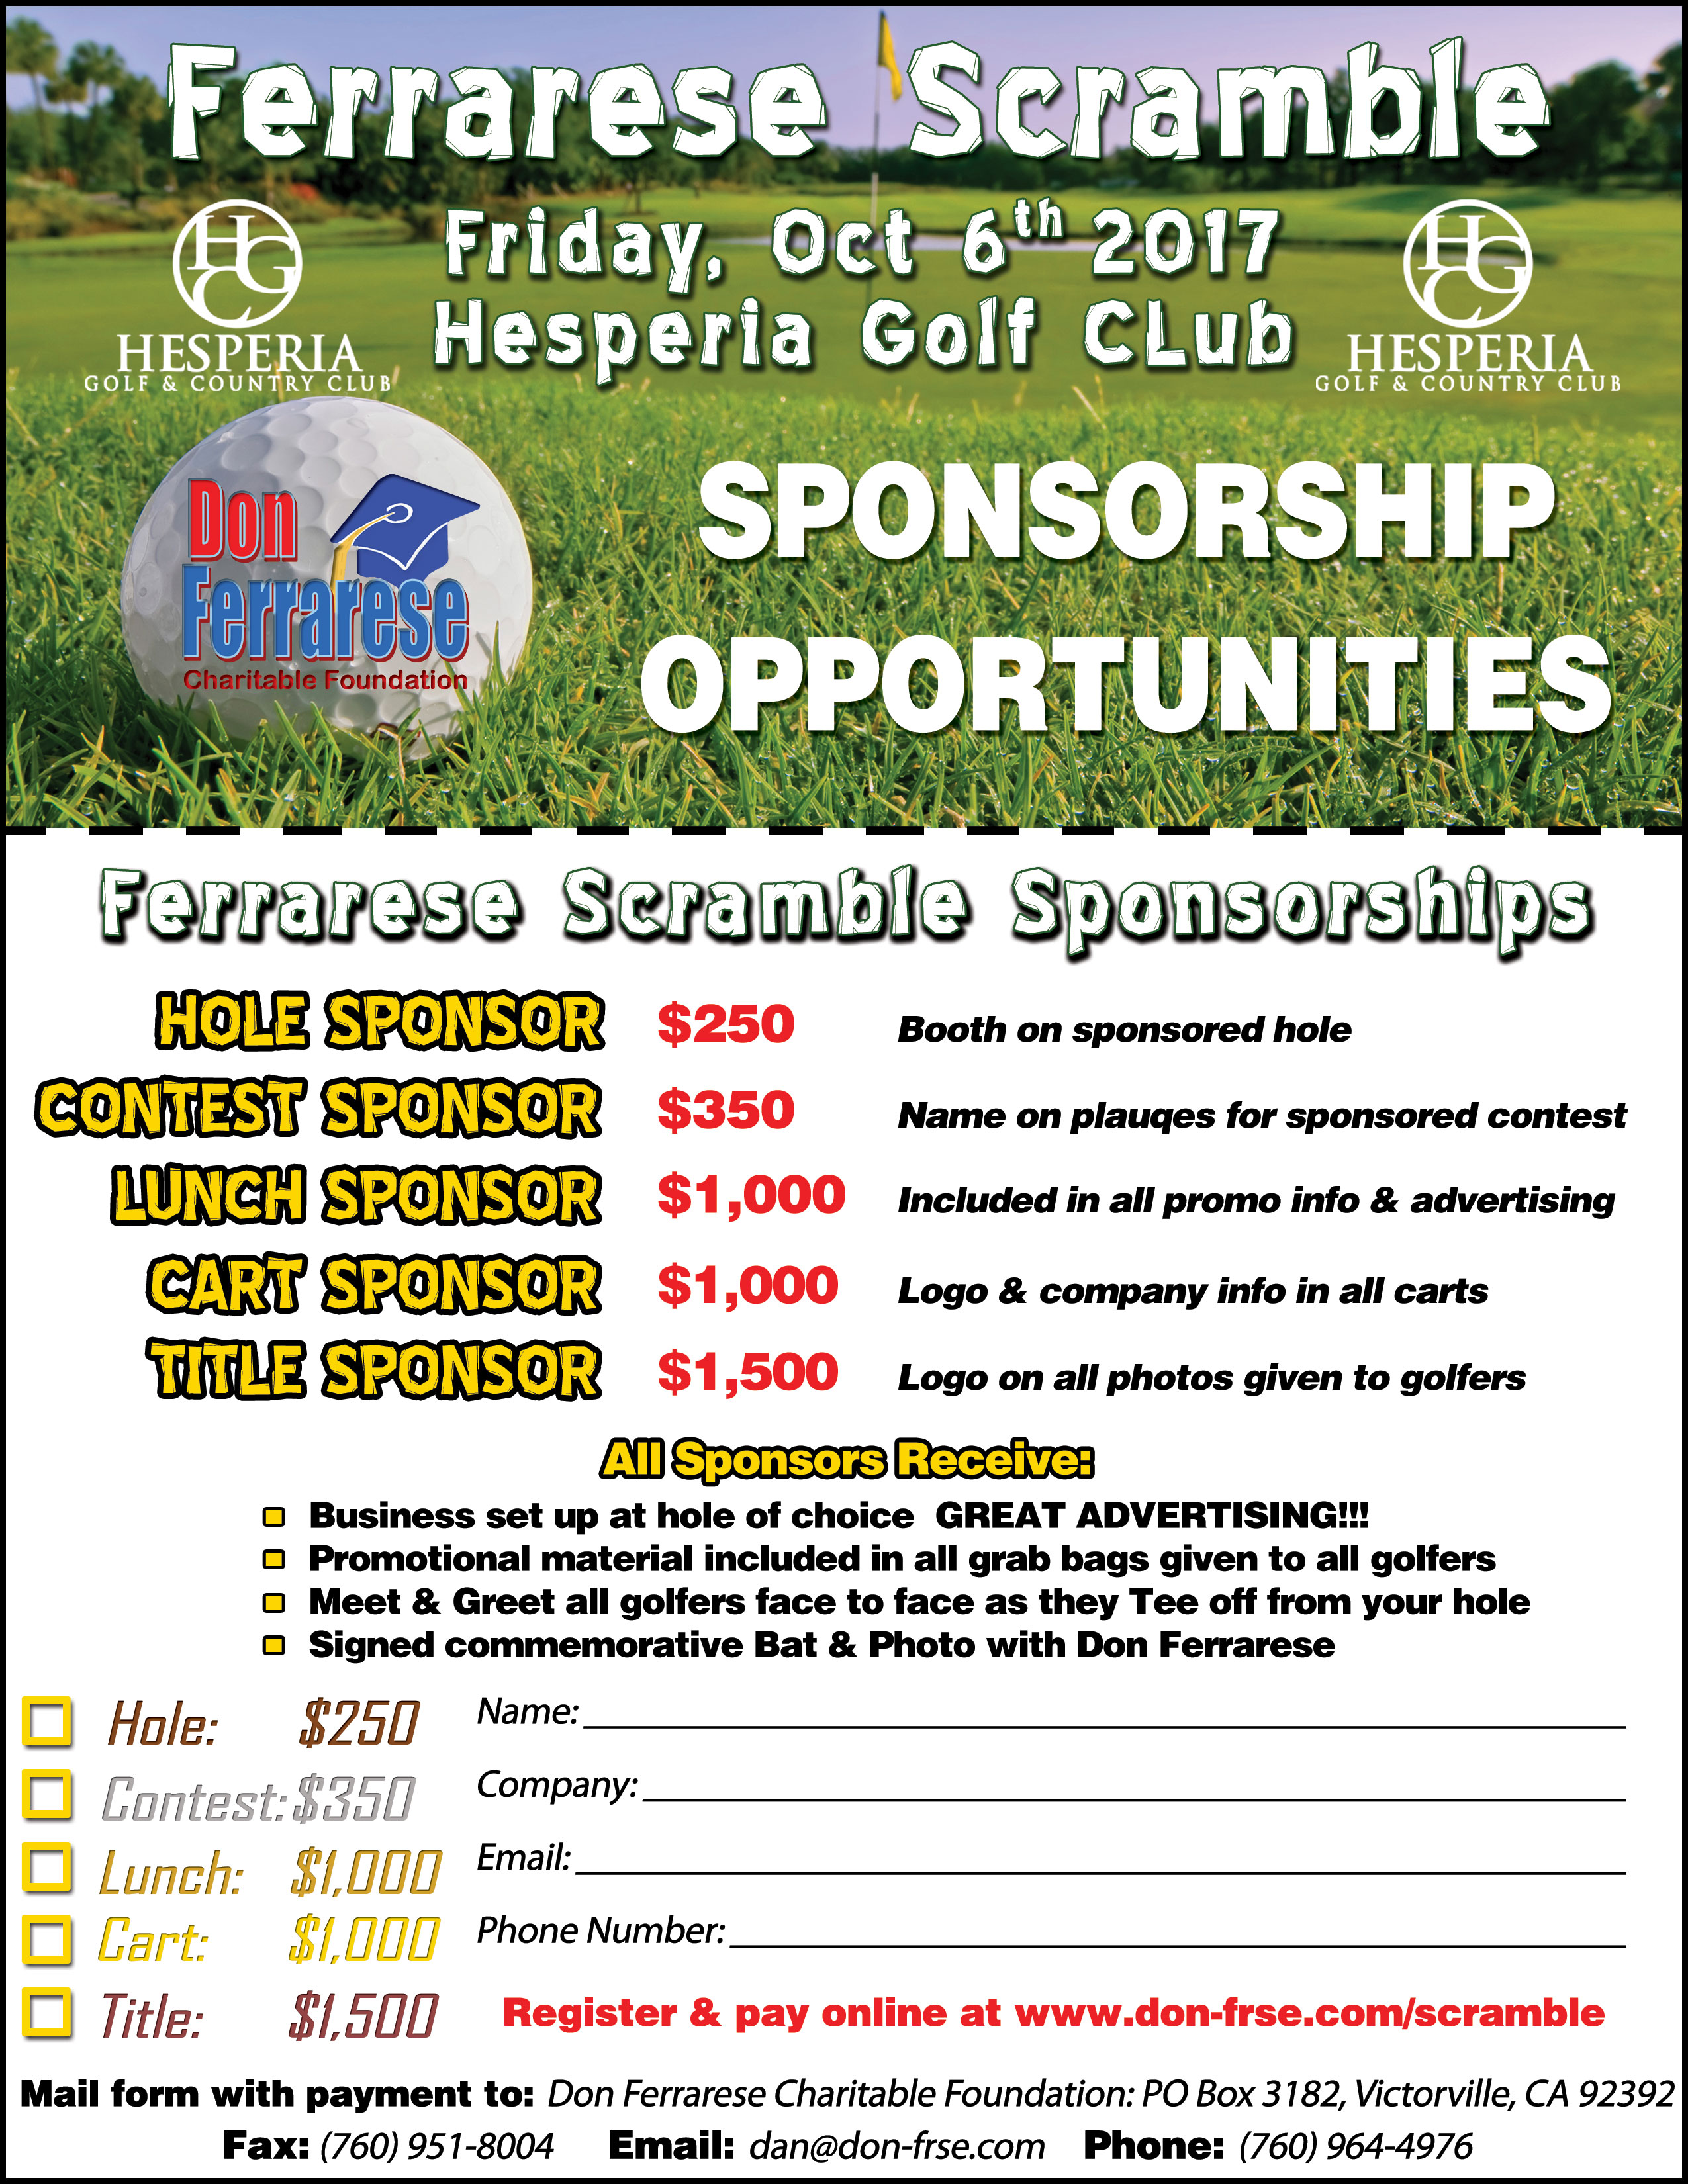 Ferrarese scramble sponsorship form click here thecheapjerseys Image collections